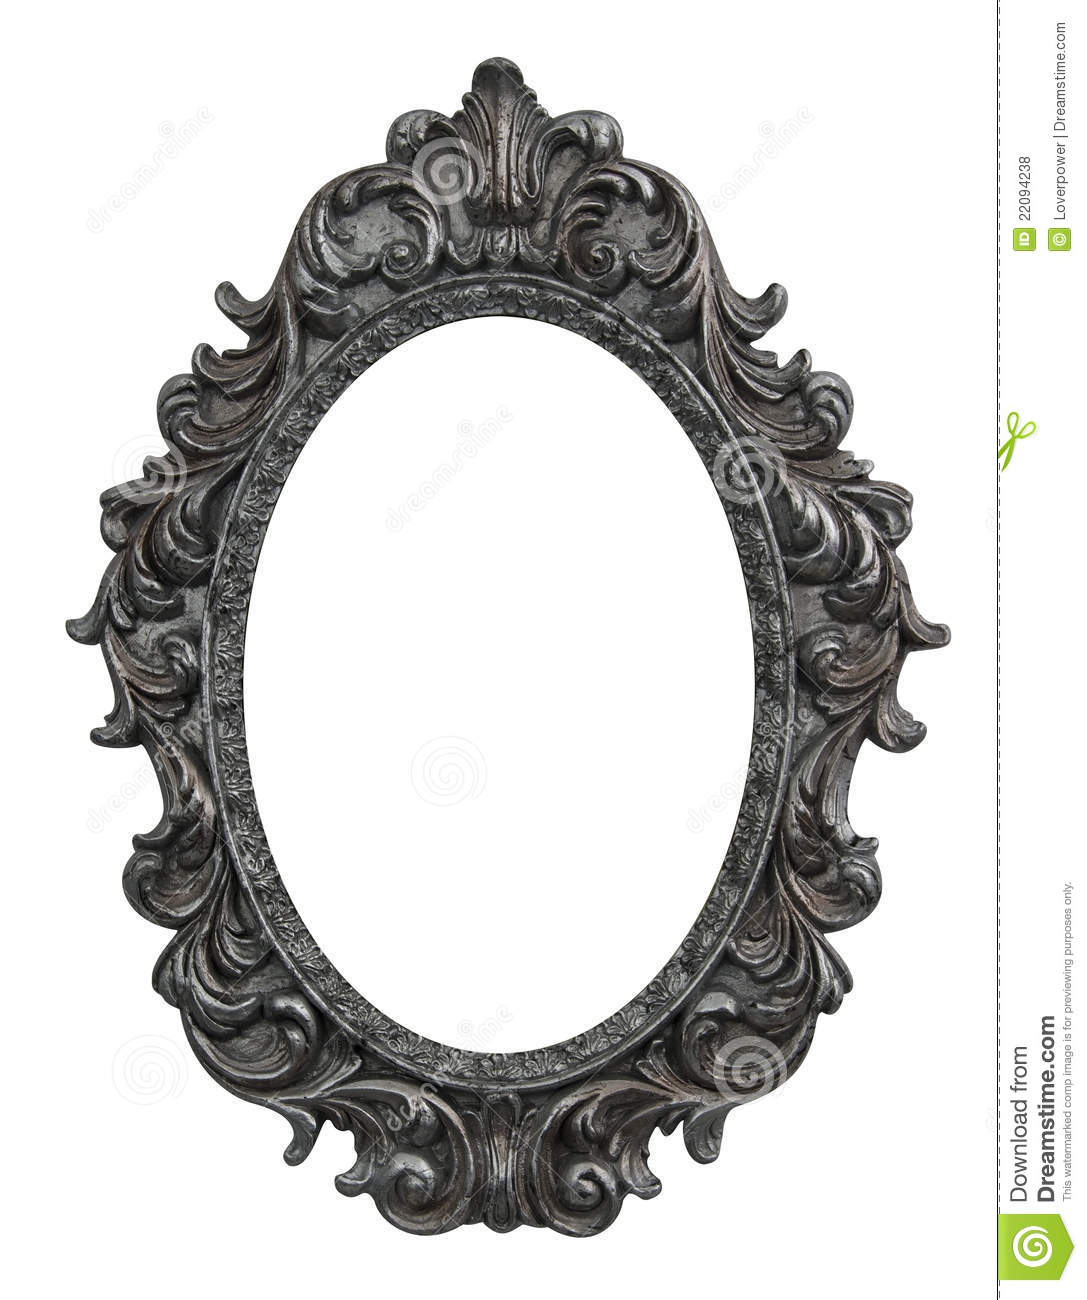 Baroque oval frame royalty free stock photos image 22094238 for Miroir magique production